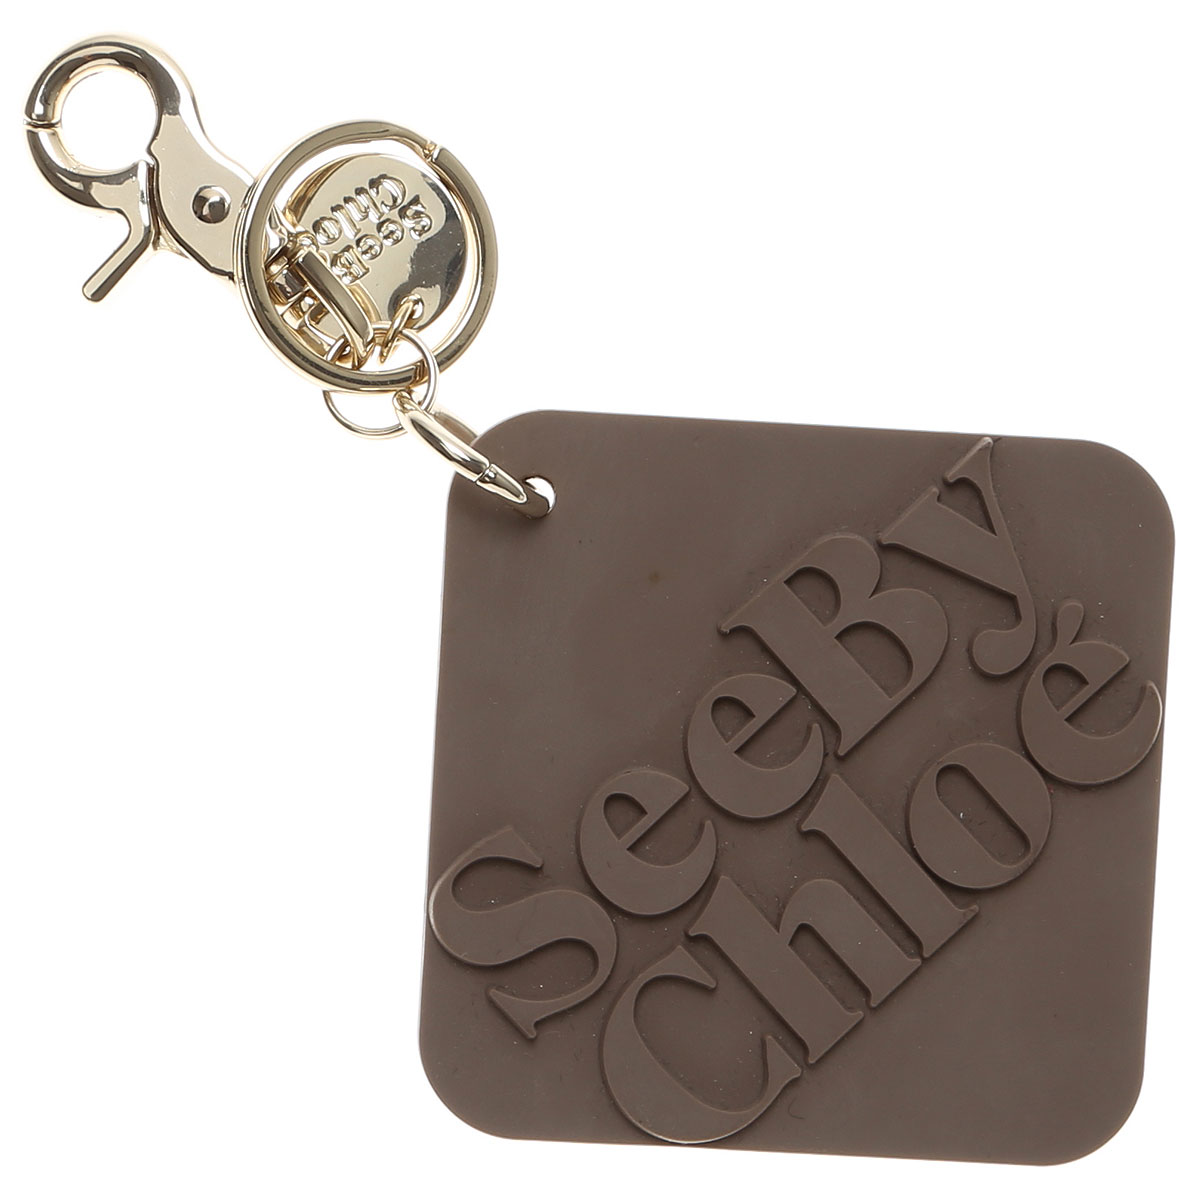 Image of Chloe Key Chain for Women, Key Ring, Taupe, Zinc, 2017